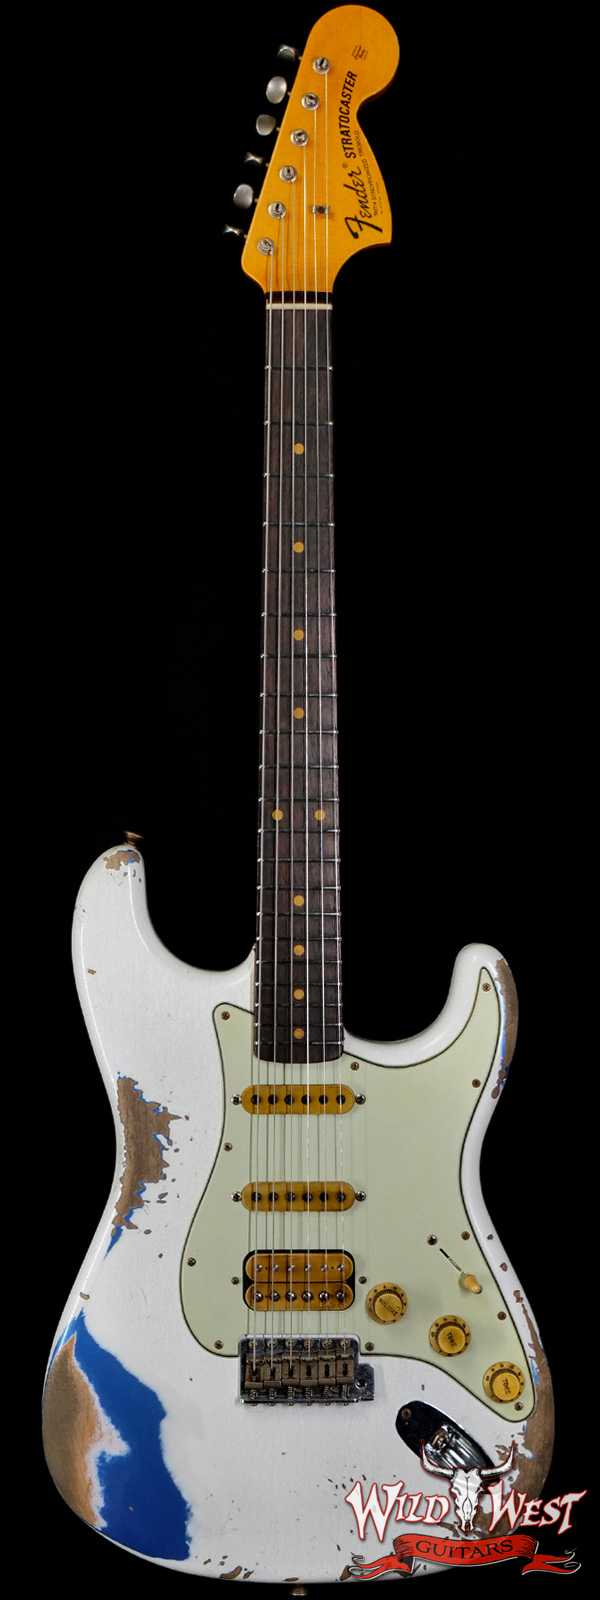 Fender Custom Shop Wild West White Lightning Stratocaster 2.0 Heavy Relic Rosewood Fingeboard Lake Placid Blue